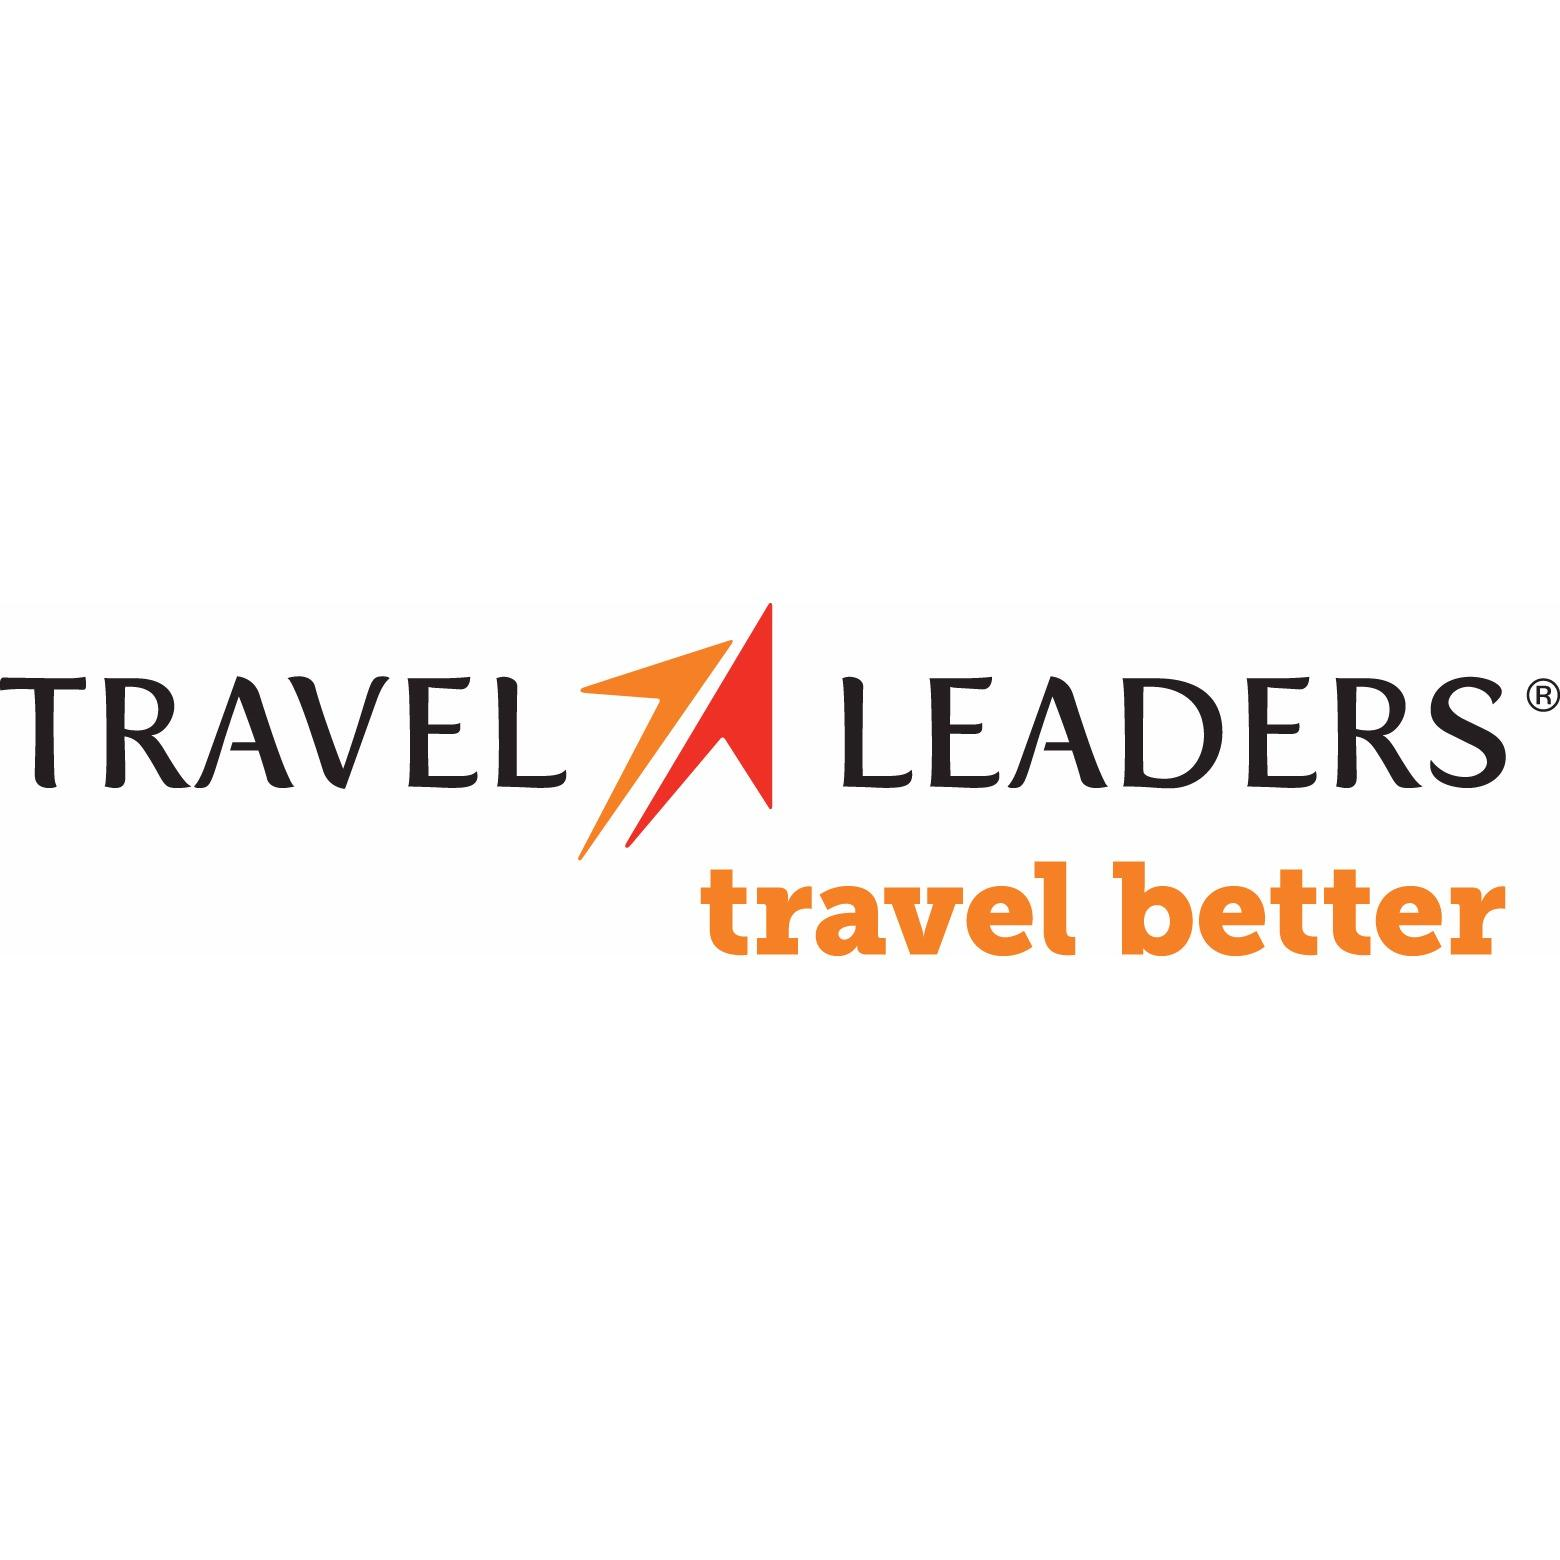 Travel Leaders Shakopee Travel Hwy 13 South Suite